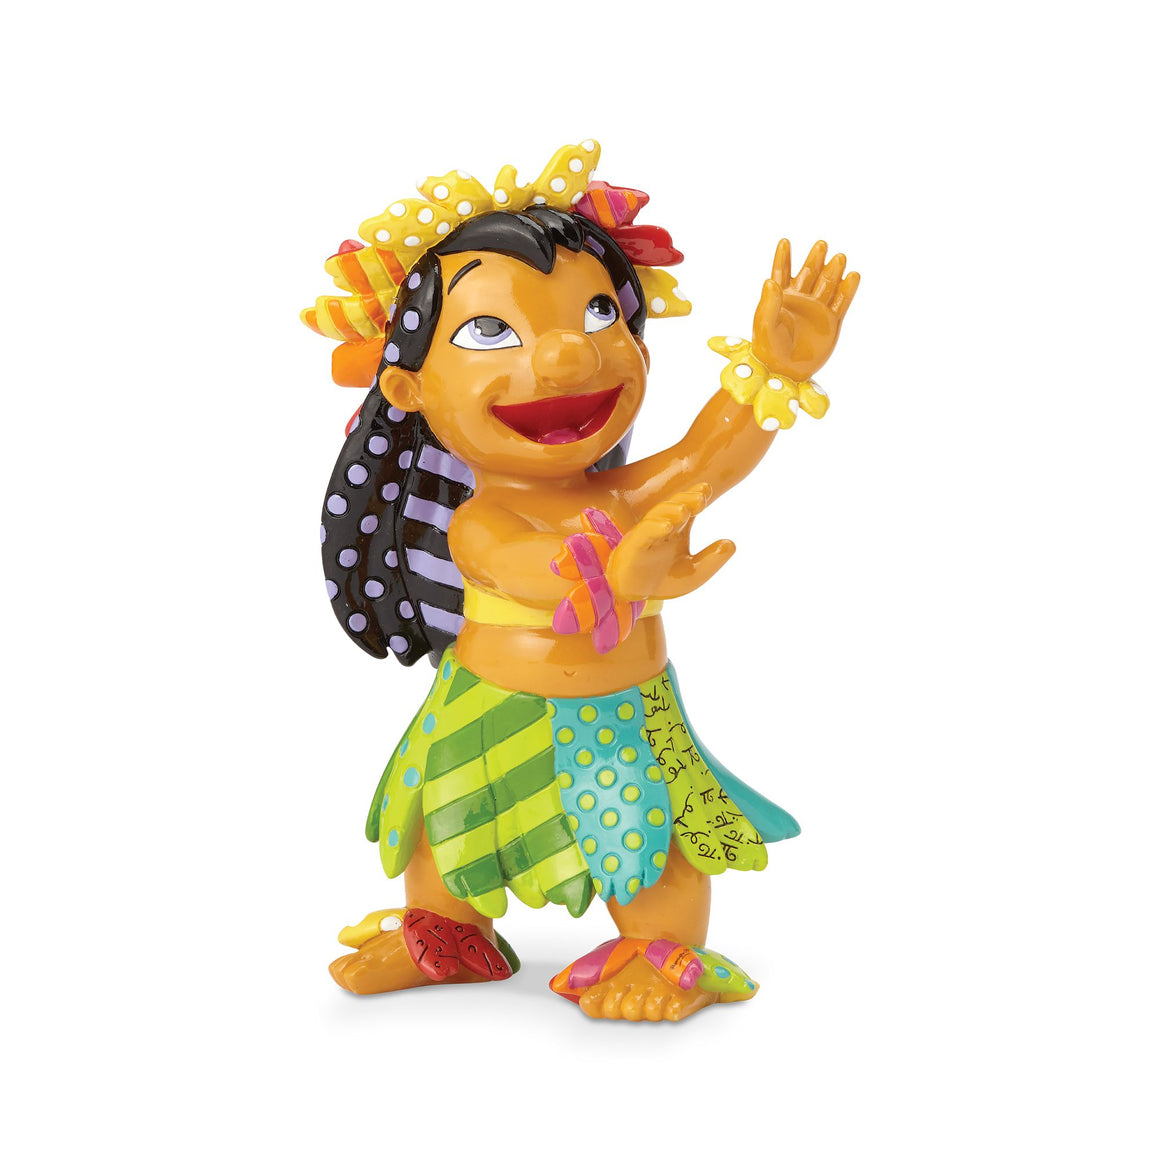 Lilo Figurine by Disney Britto